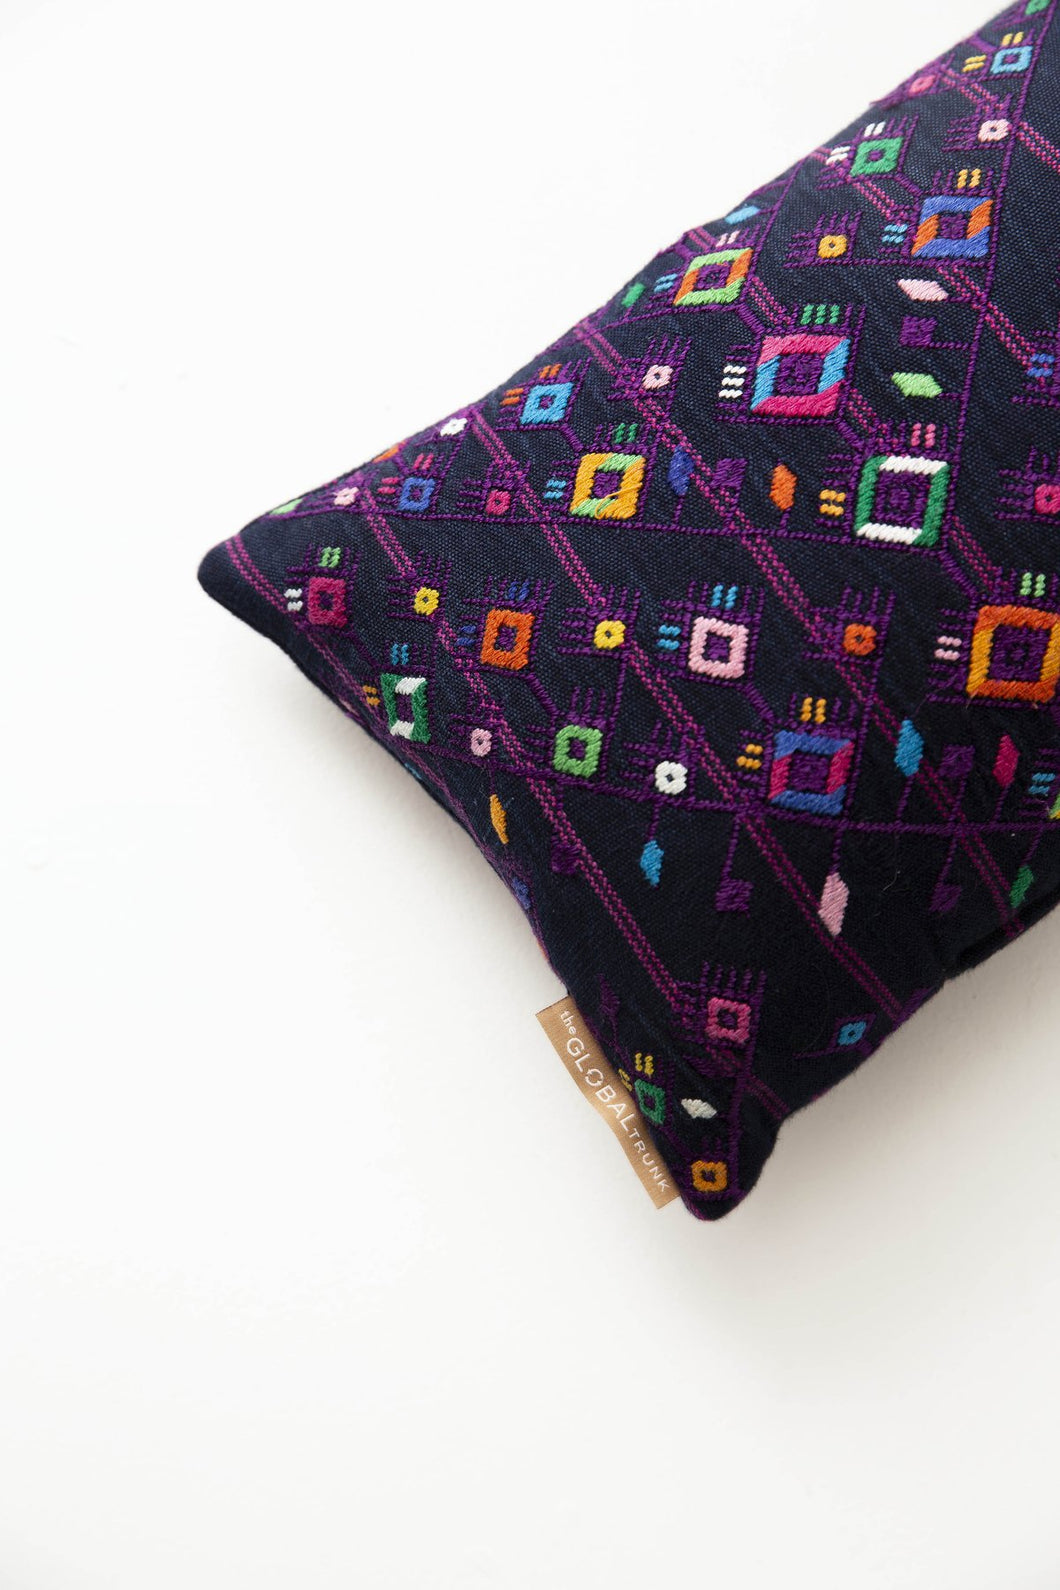 MAYAN HEIRLOOM PILLOW NO. 506